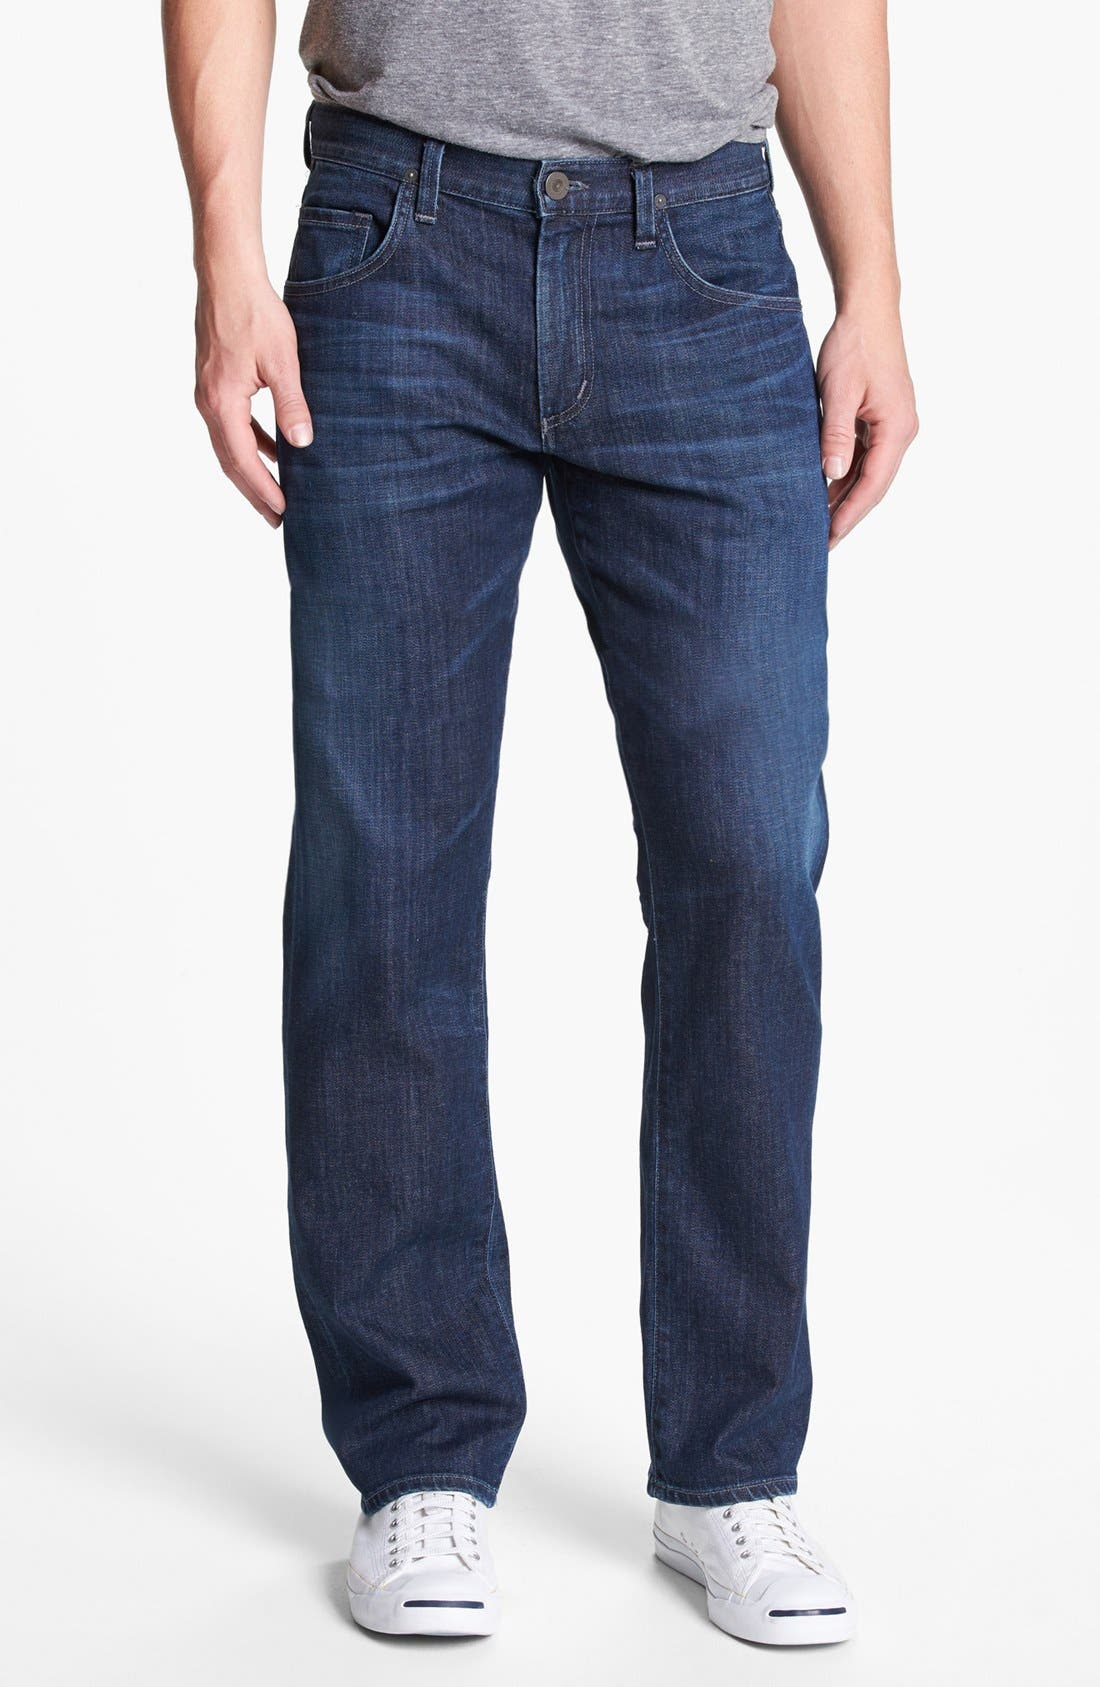 Alternate Image 1 Selected - Citizens of Humanity 'Perfect' Relaxed Fit Jeans (Ricky)